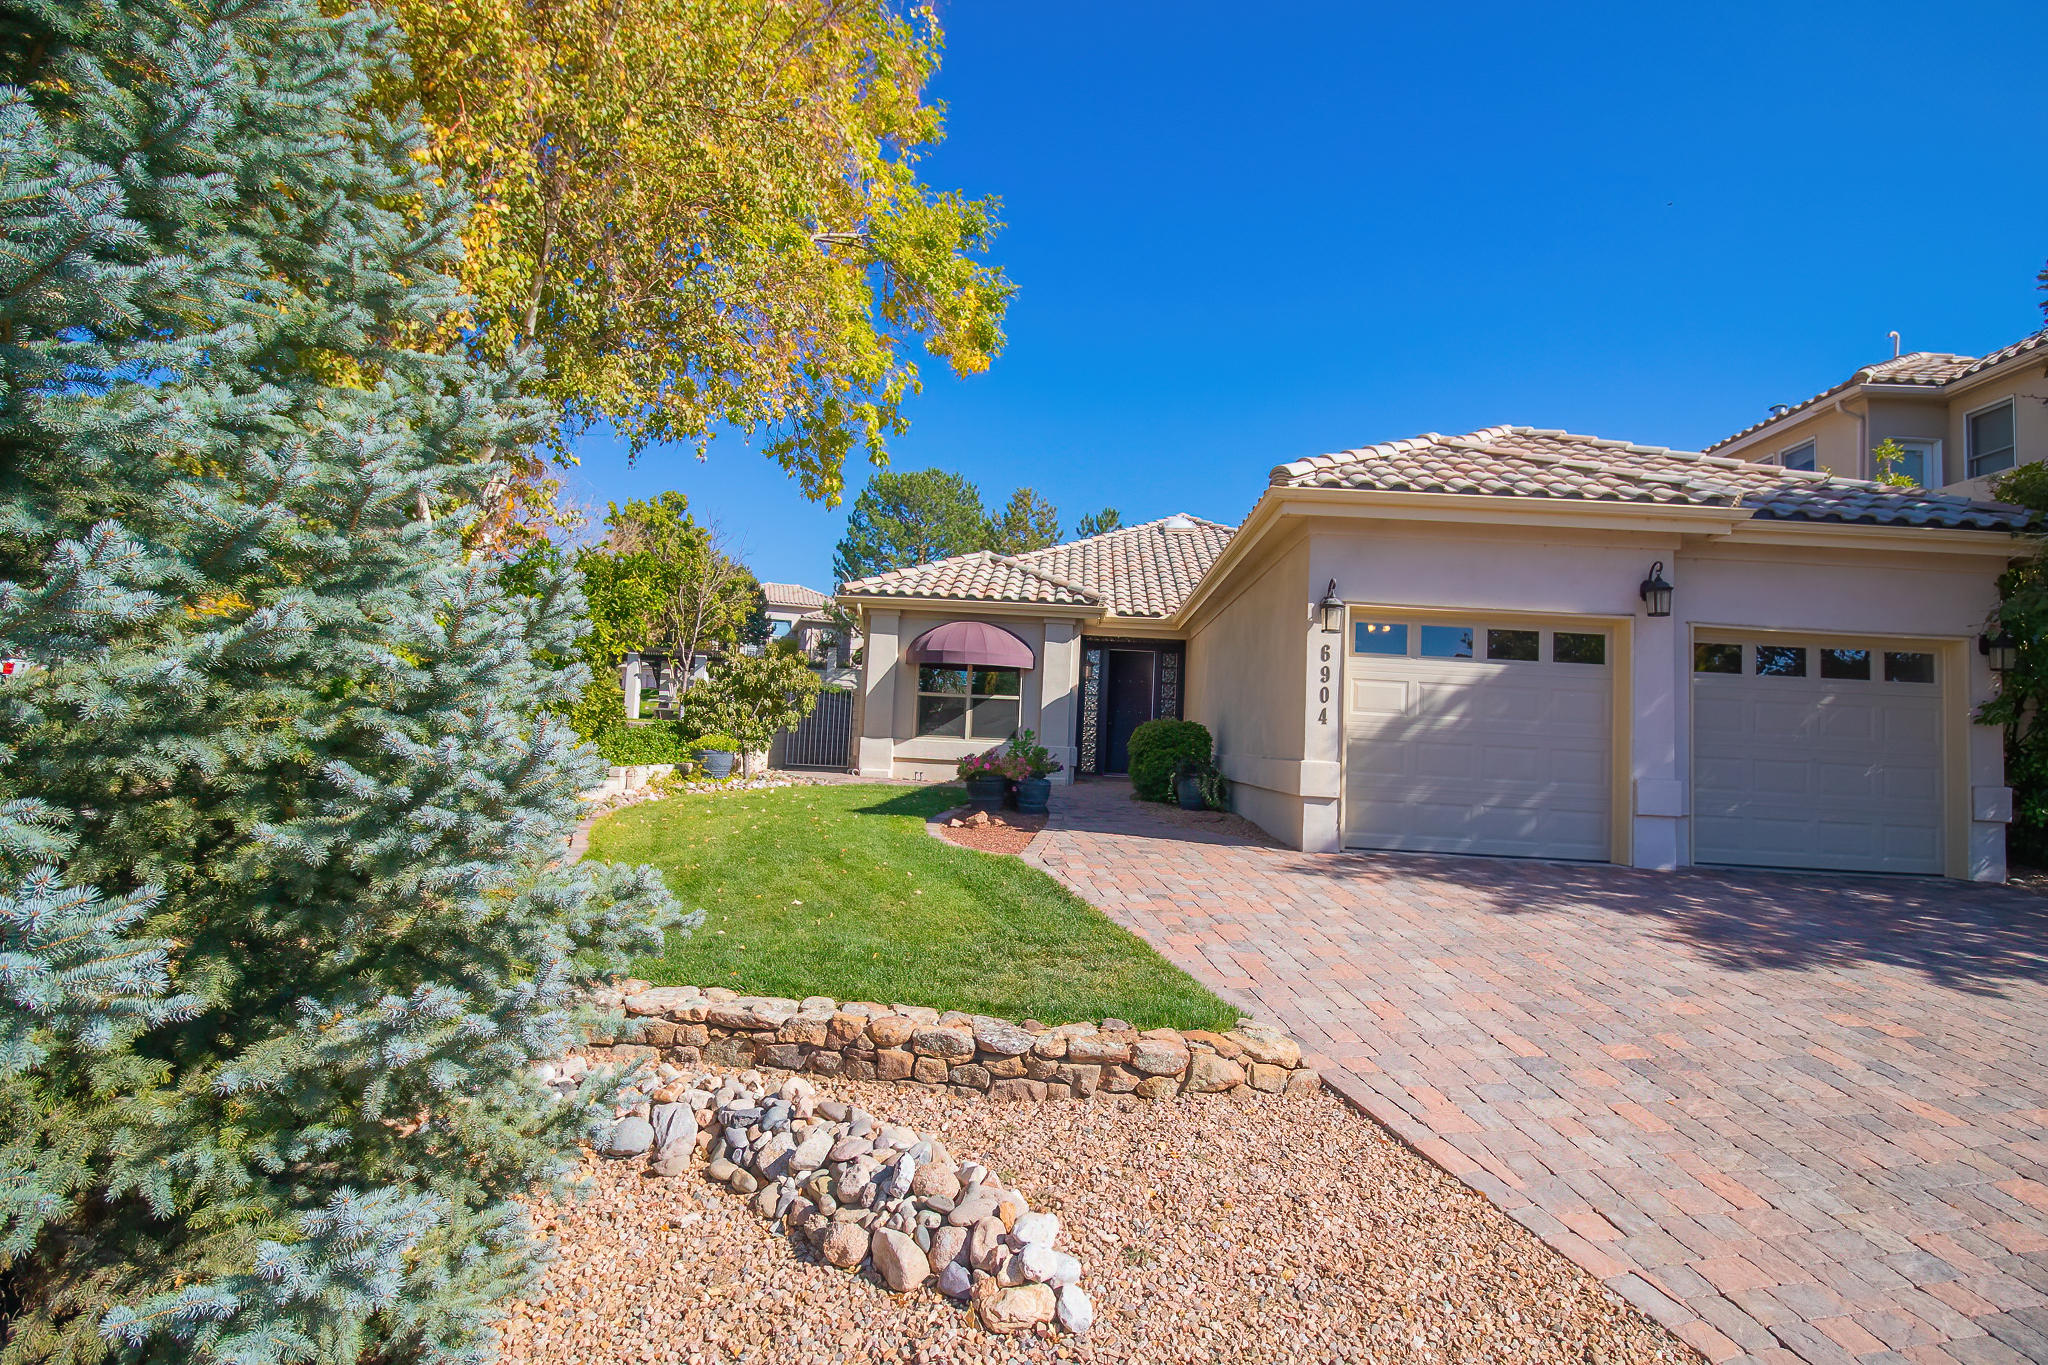 Fabulous single story in sought after gated community The Enclave at Tanoan. This home offers exceptional curb appeal. Living room with a fireplace opens up to the Kitchen & Dining Room and has Mountain Views! The Kitchen with granite counter tops and updated cabinets is just perfect for prepping & storing. Spacious Owner's Suite has a spa like bath with a jetted tub, separate shower & double sinks.  One of the secondary bedrooms has a Murphy bed! Very peaceful backyard with lush grass and Mountain Views. Greenbelt behind home for privacy. *** Please allow a 48h min. response time on any and all offers.